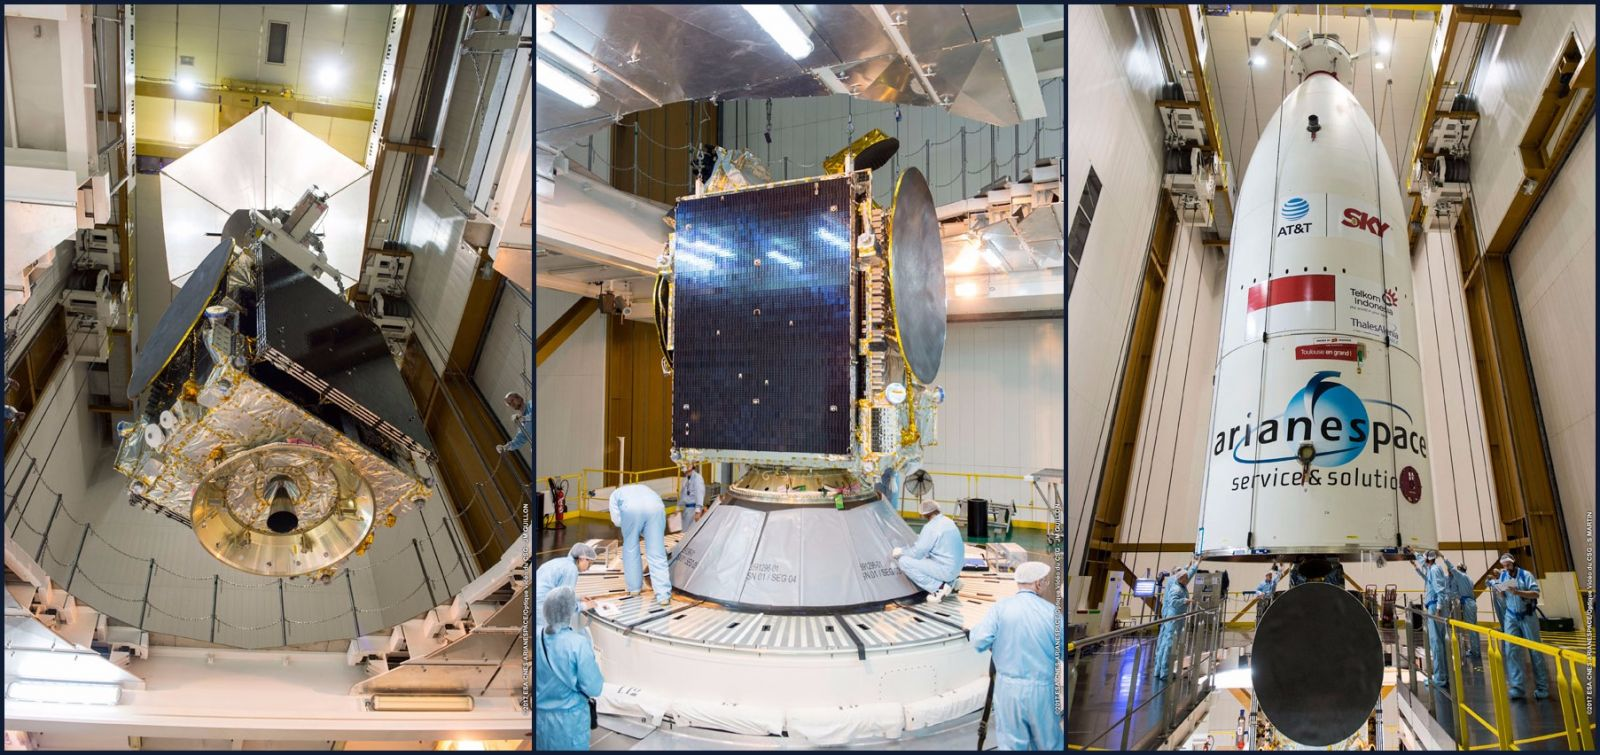 Encapsulation of satellites on flight VA235 (date: 2017-2-8)